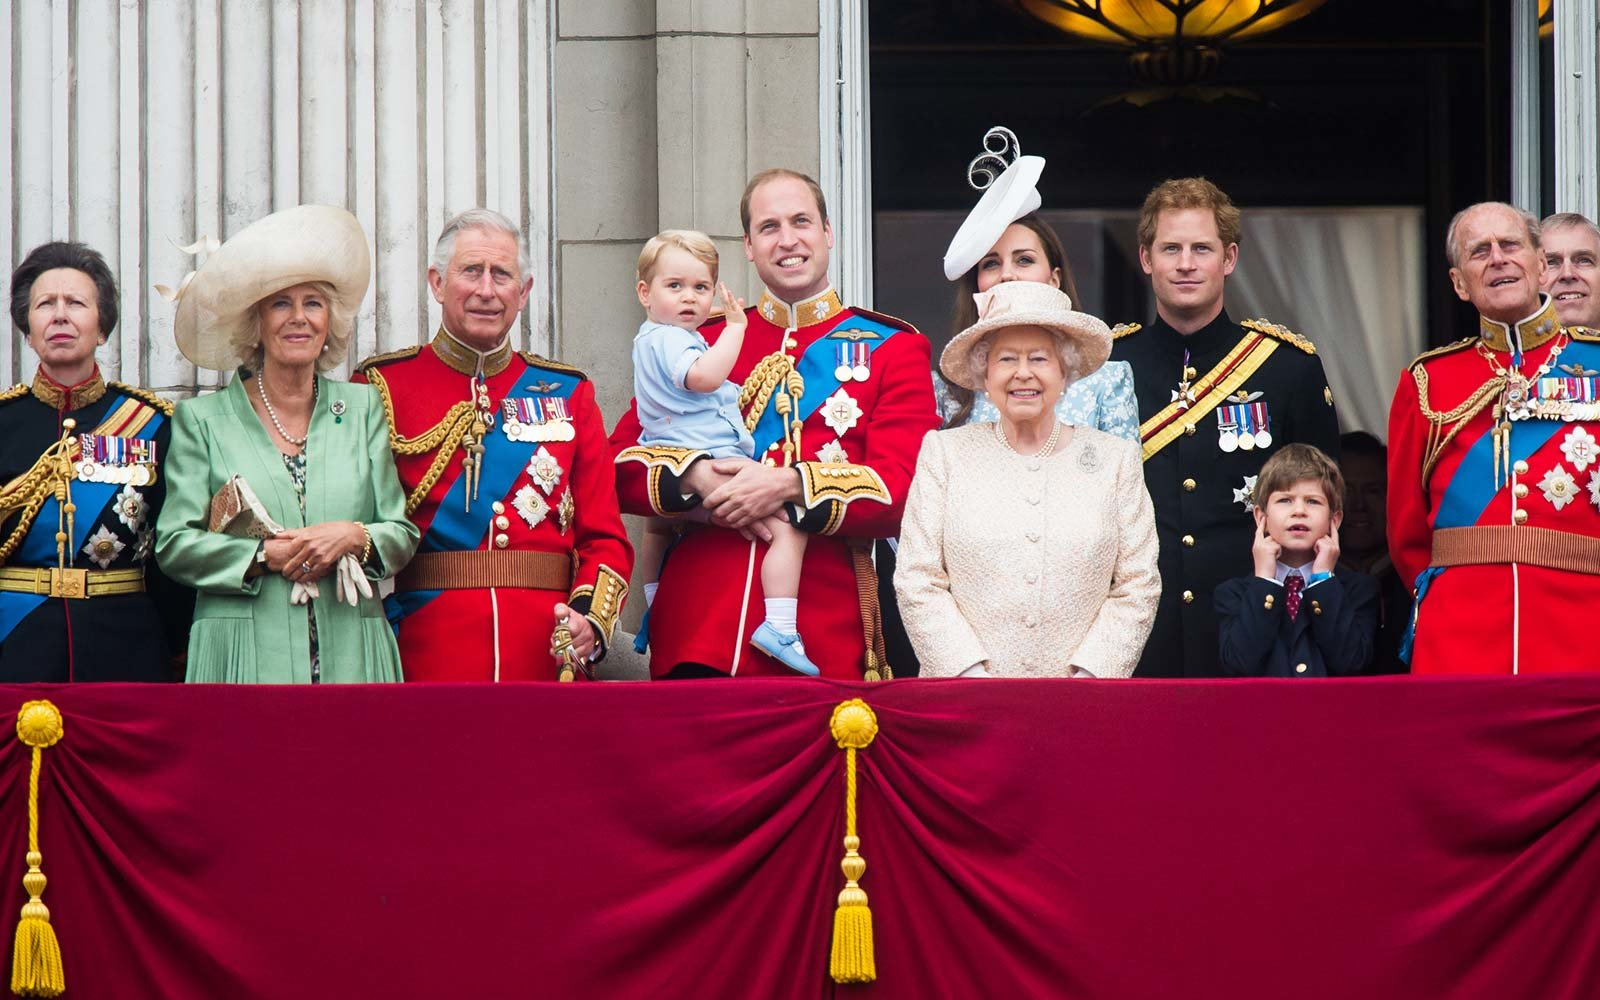 Can The Royal Family Travel Together